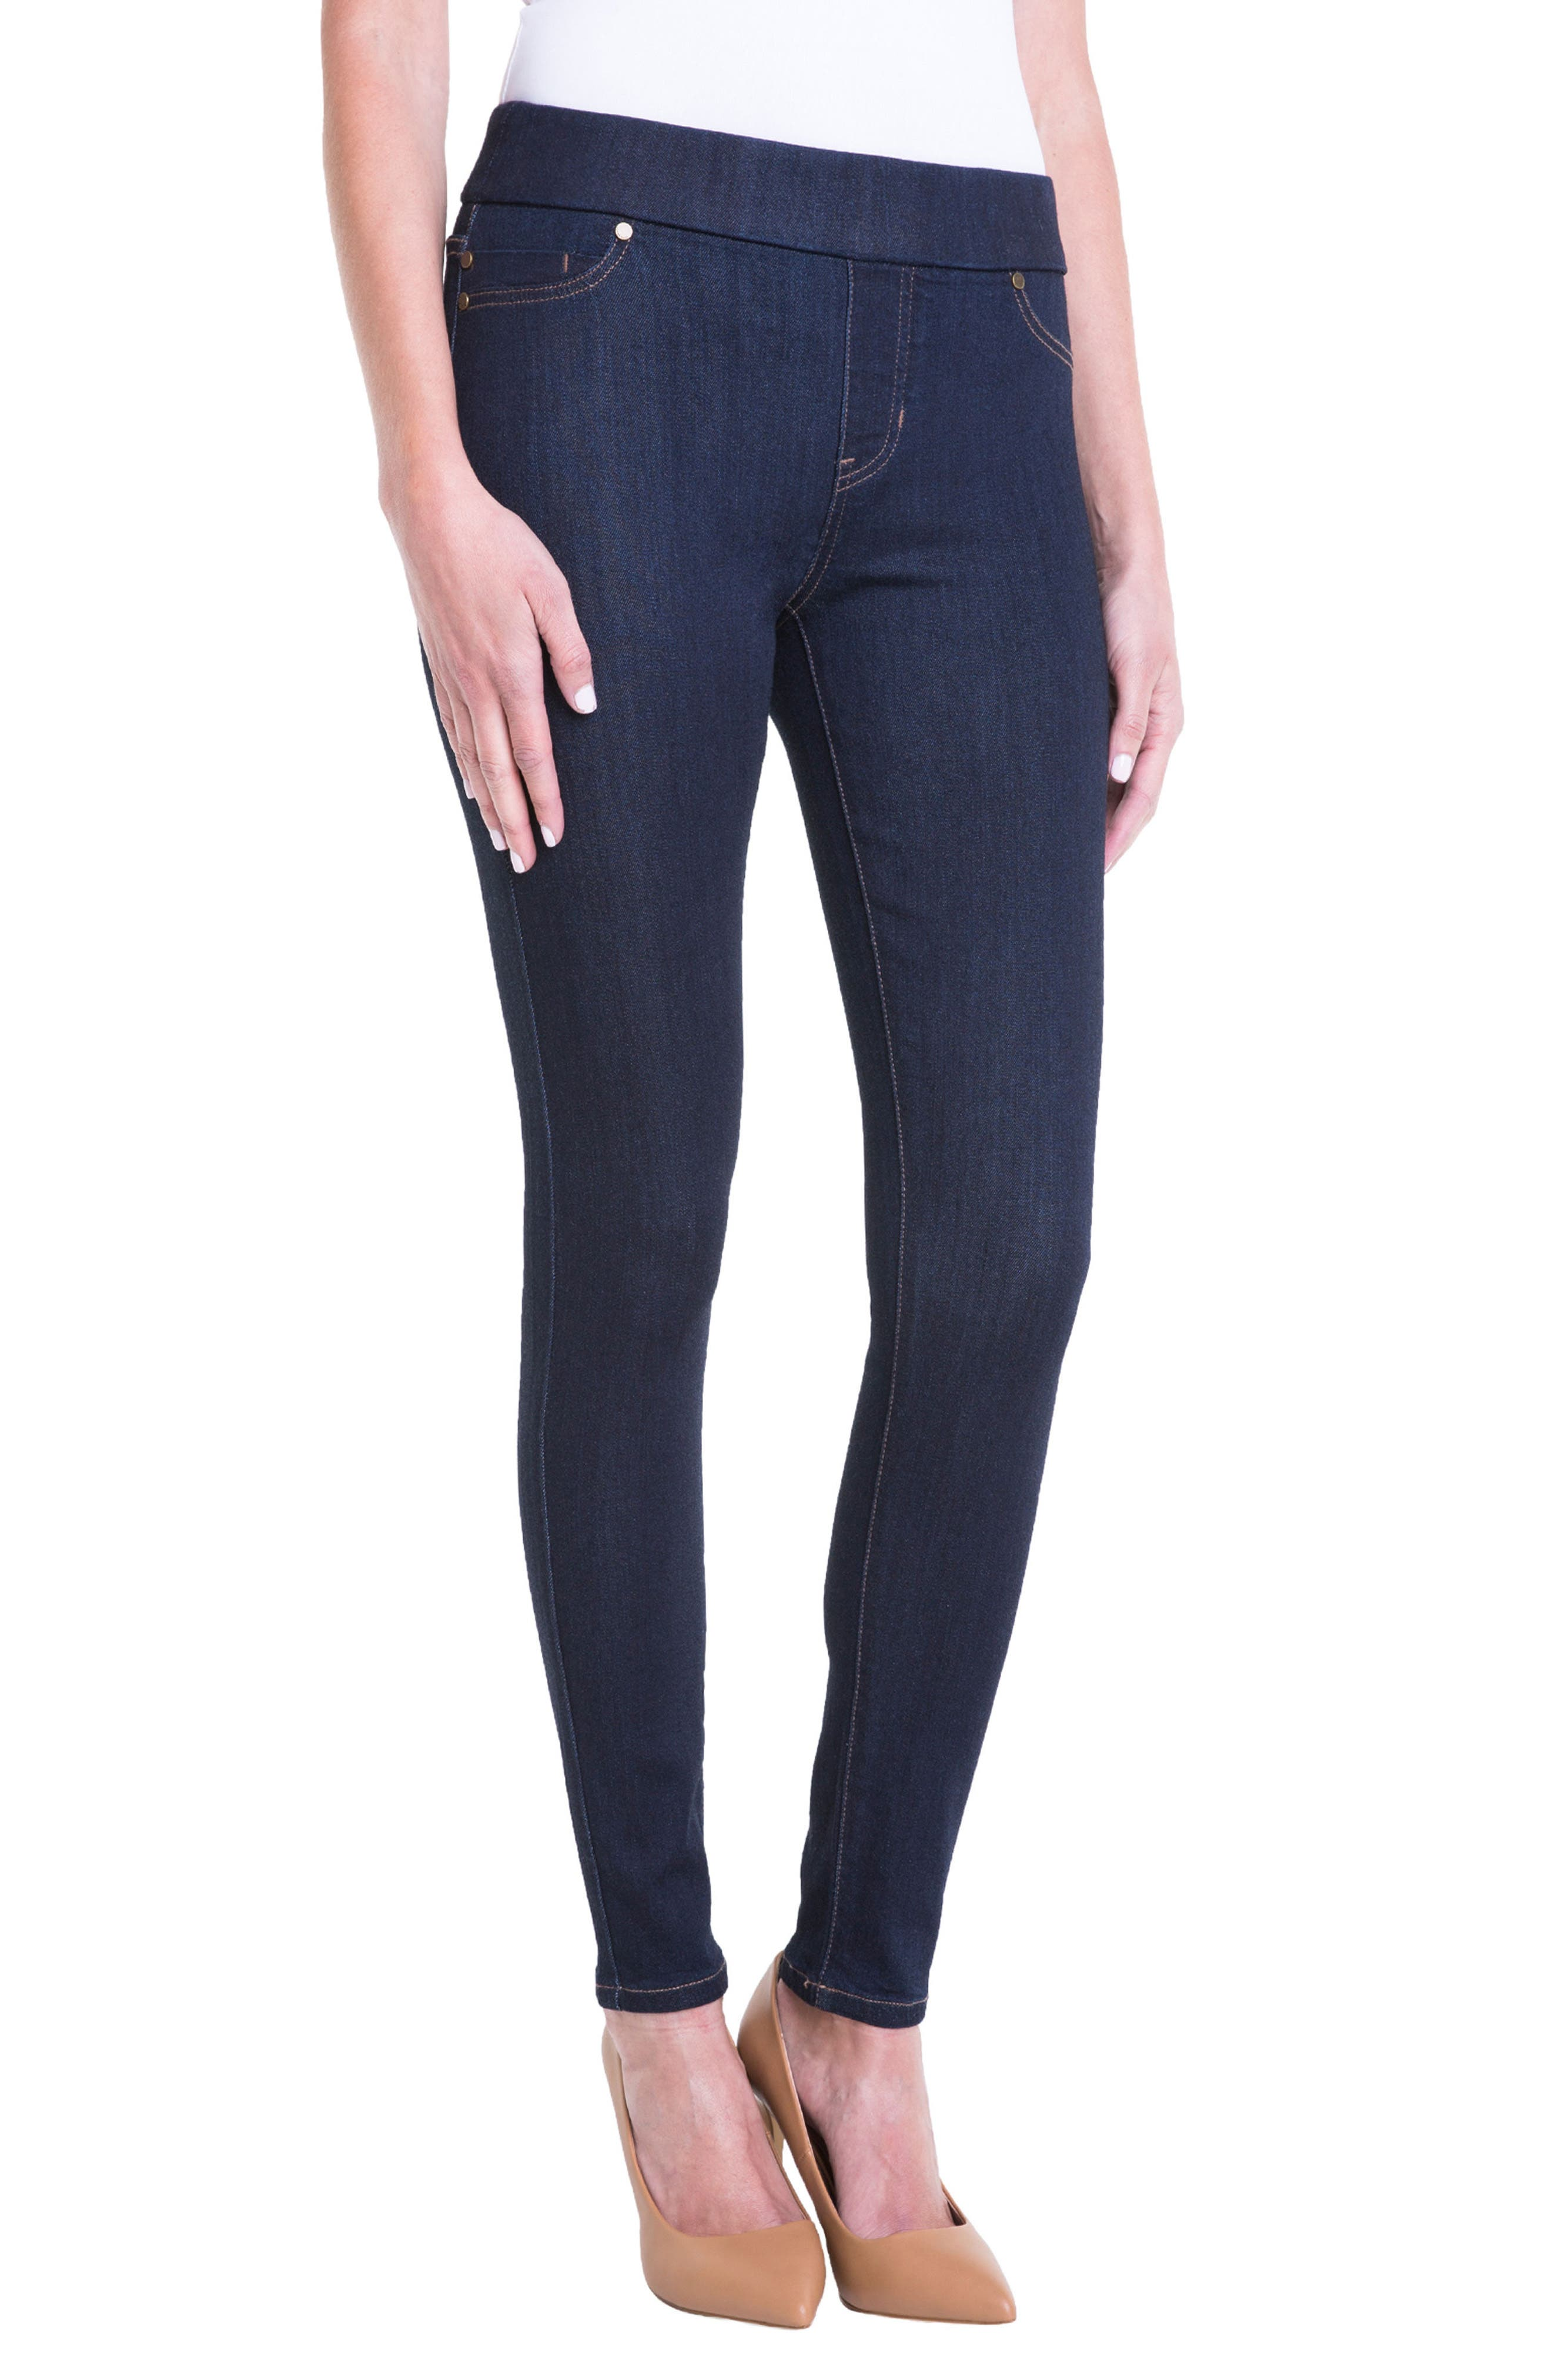 Sienna Pull-On Knit Denim Leggings,                             Alternate thumbnail 3, color,                             INDIGO RINSE